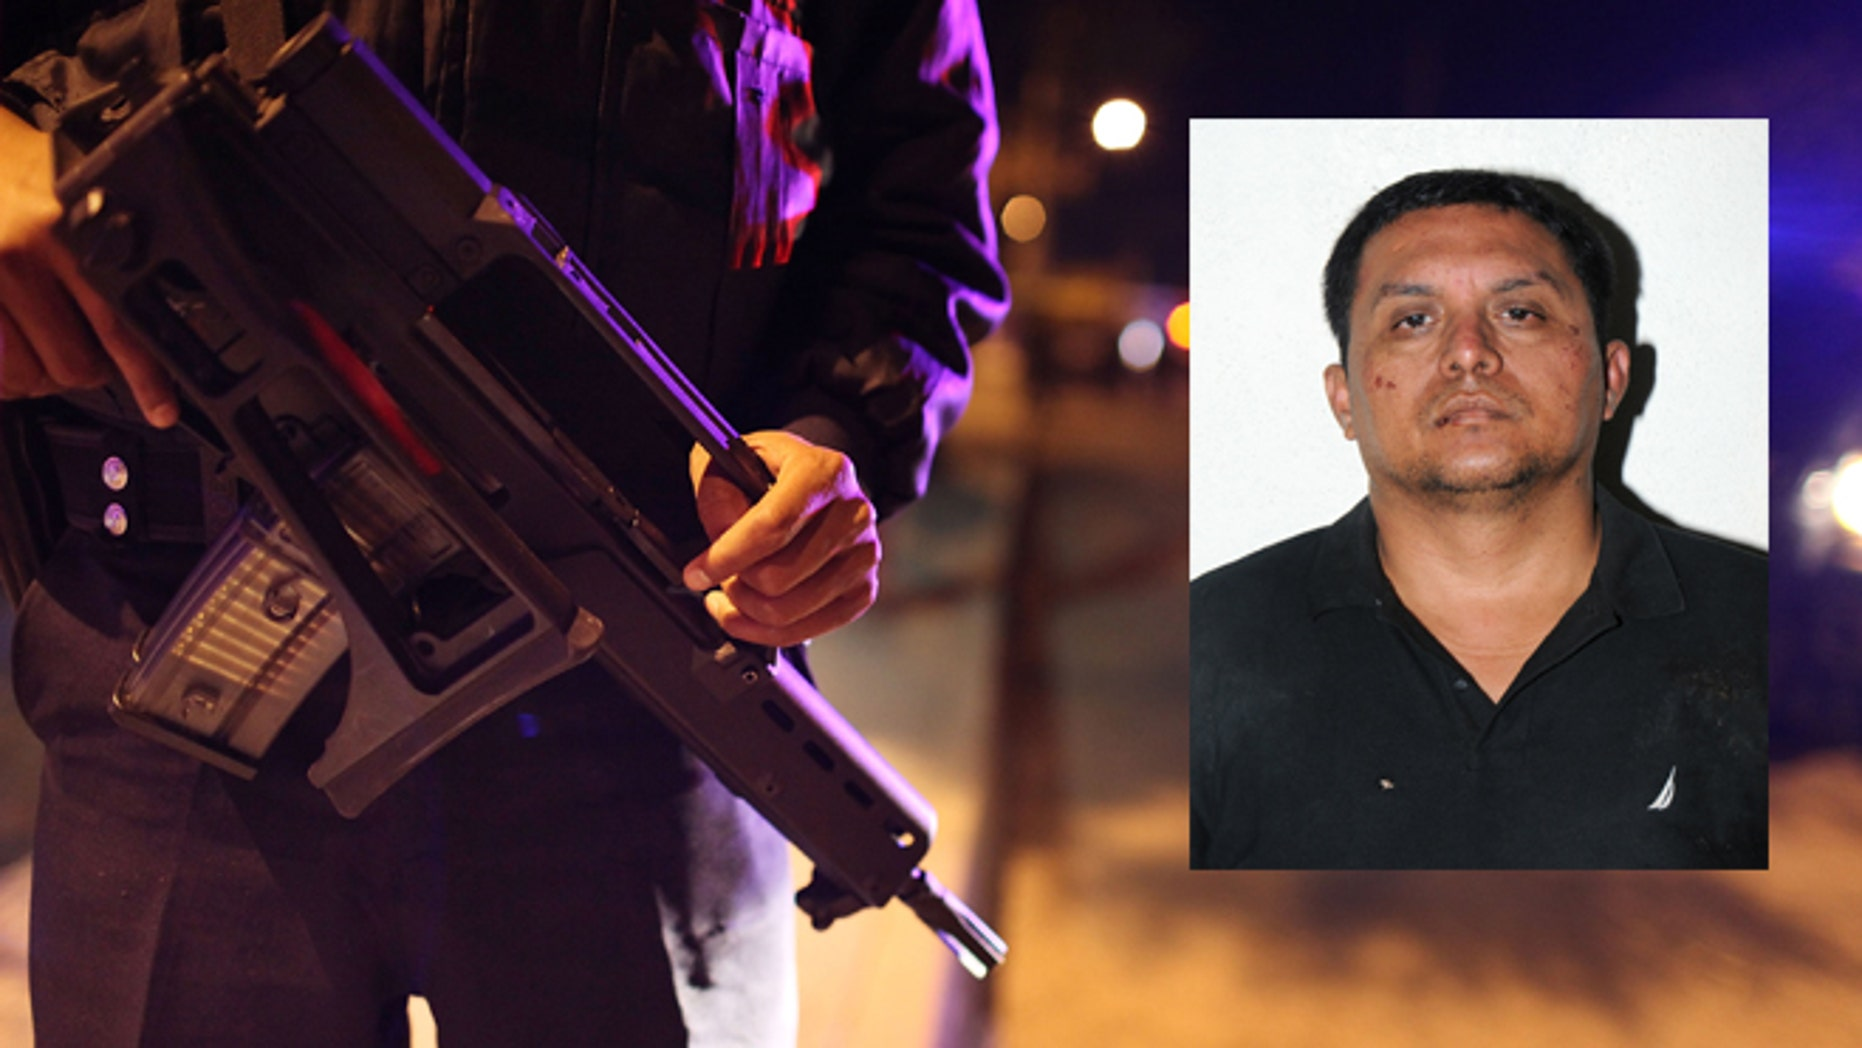 Dangerous Los Zetas Drug Cartel Leader Attempted To Run From